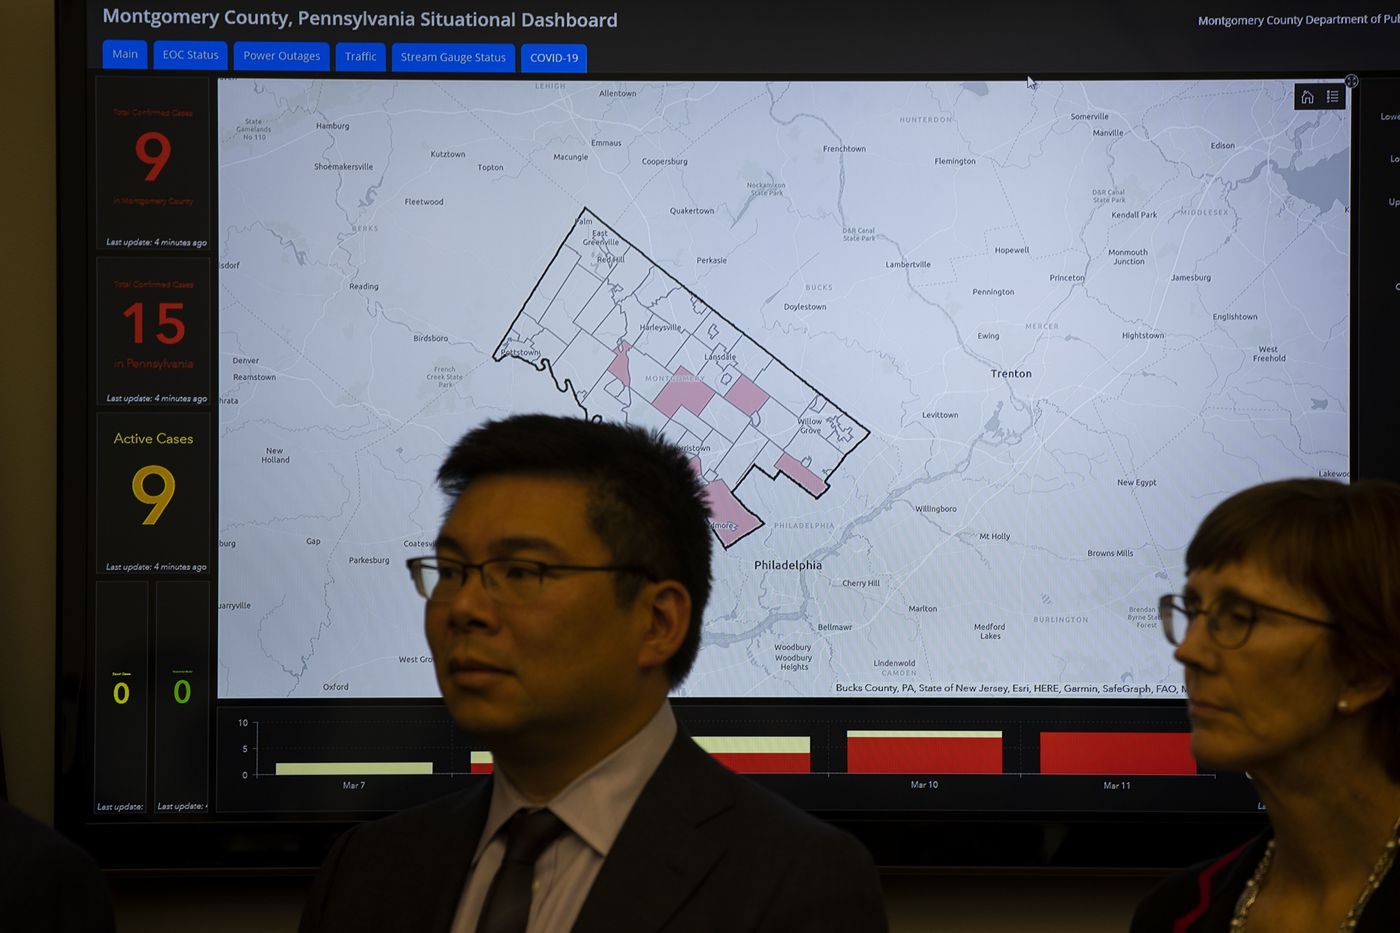 Dr. Alvin Wang, Regional EMS Medical Director and Dr. Brenda Weis, MSPH, PhD, Administrator, Office of Public Health, stand in front of a map of Montgomery County at the Montgomery County Department of Public Safety on Wednesday.